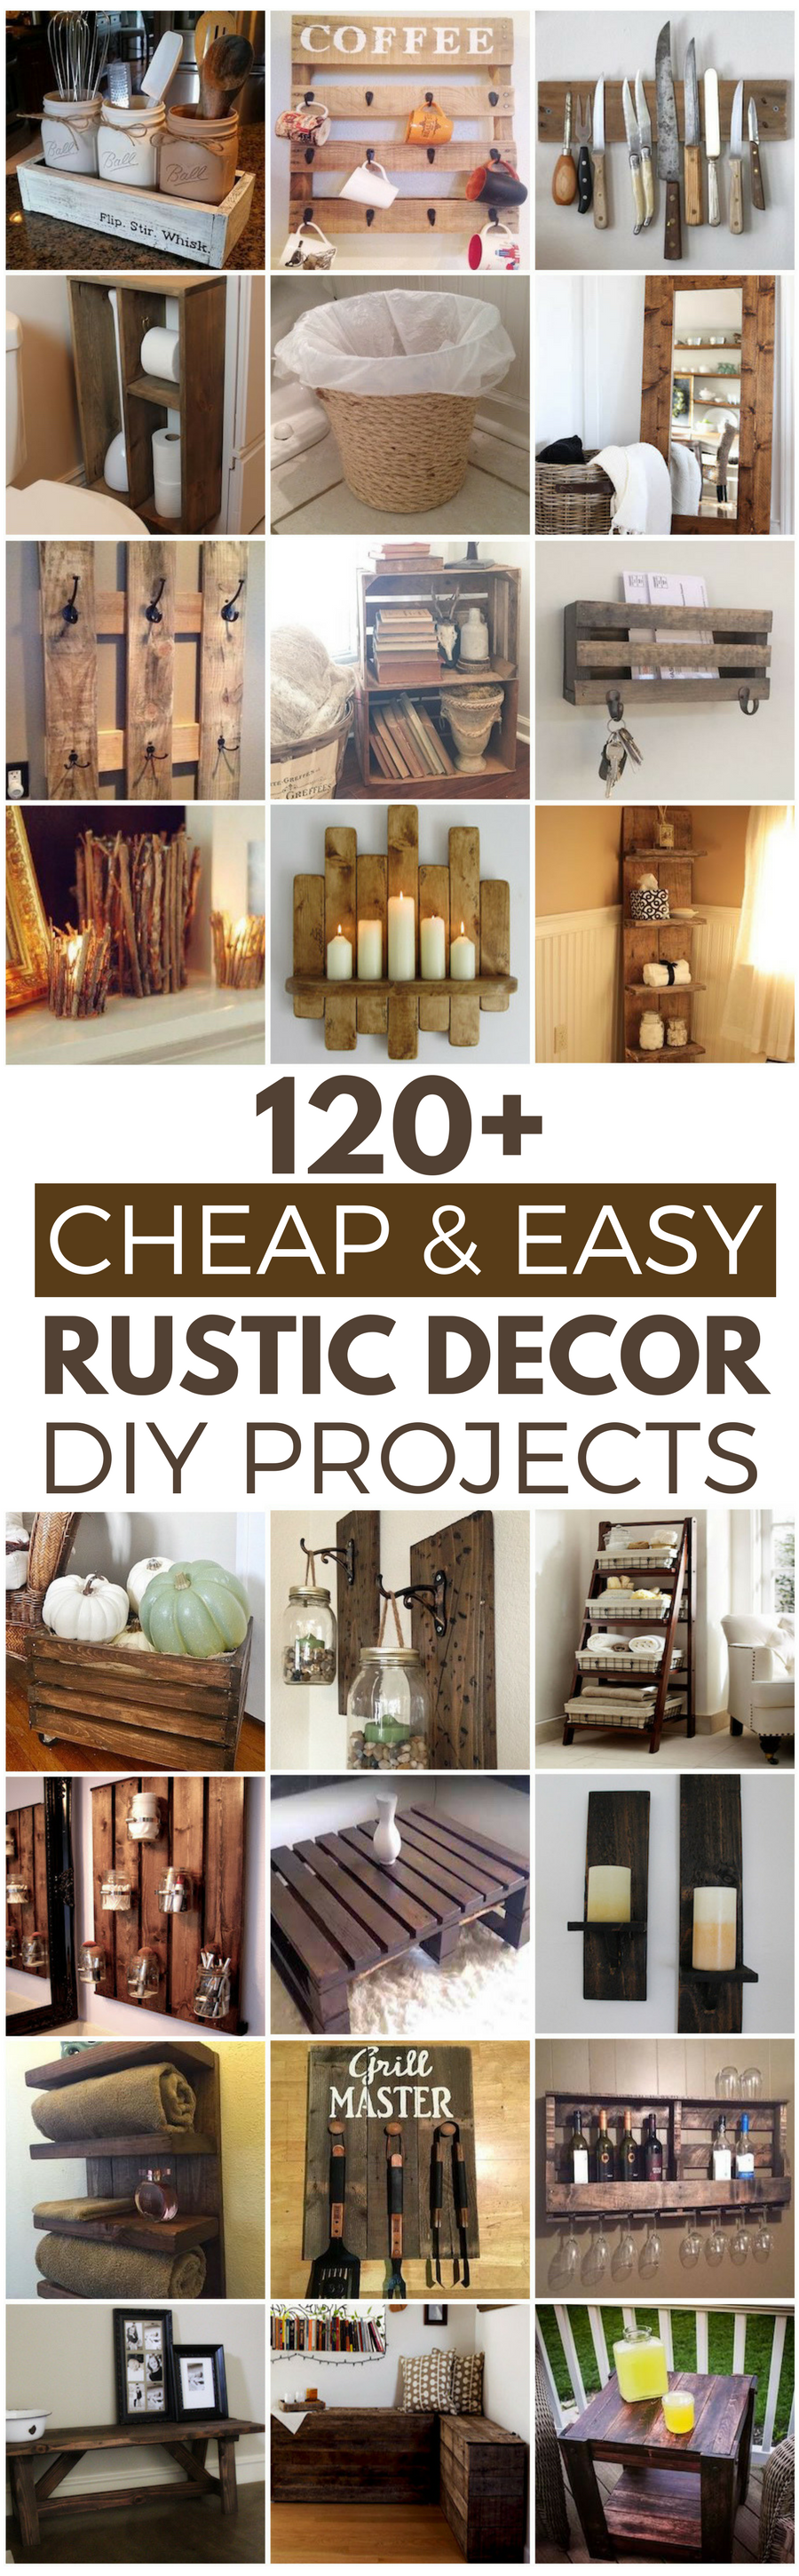 120 cheap and easy diy rustic home decor ideas | house, craft and